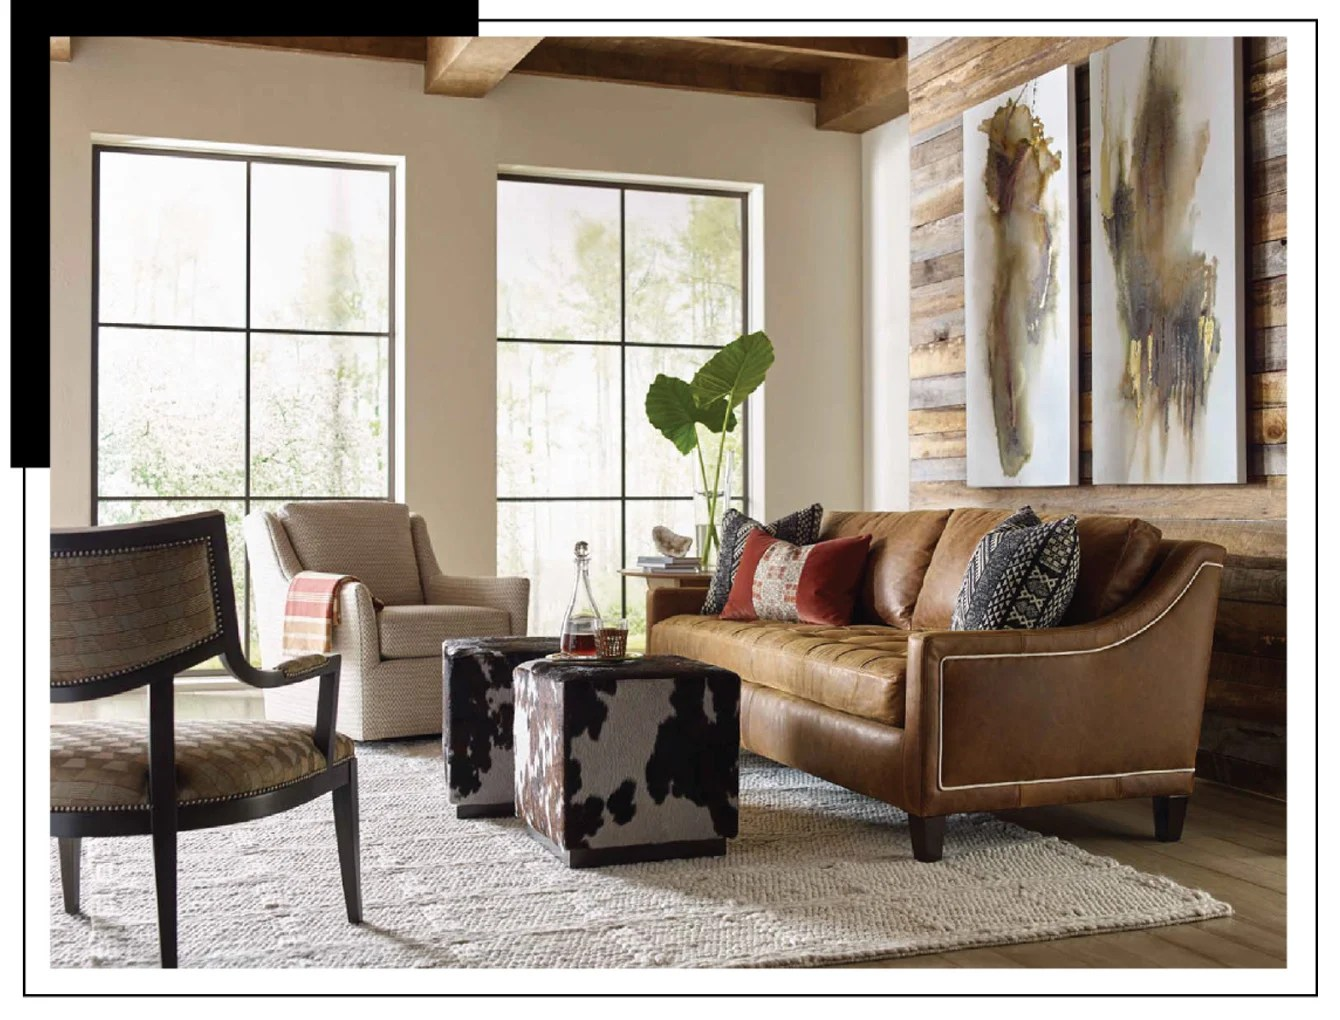 Leather Furniture Furniture Store In Denver Colorado Style Home Furnishings